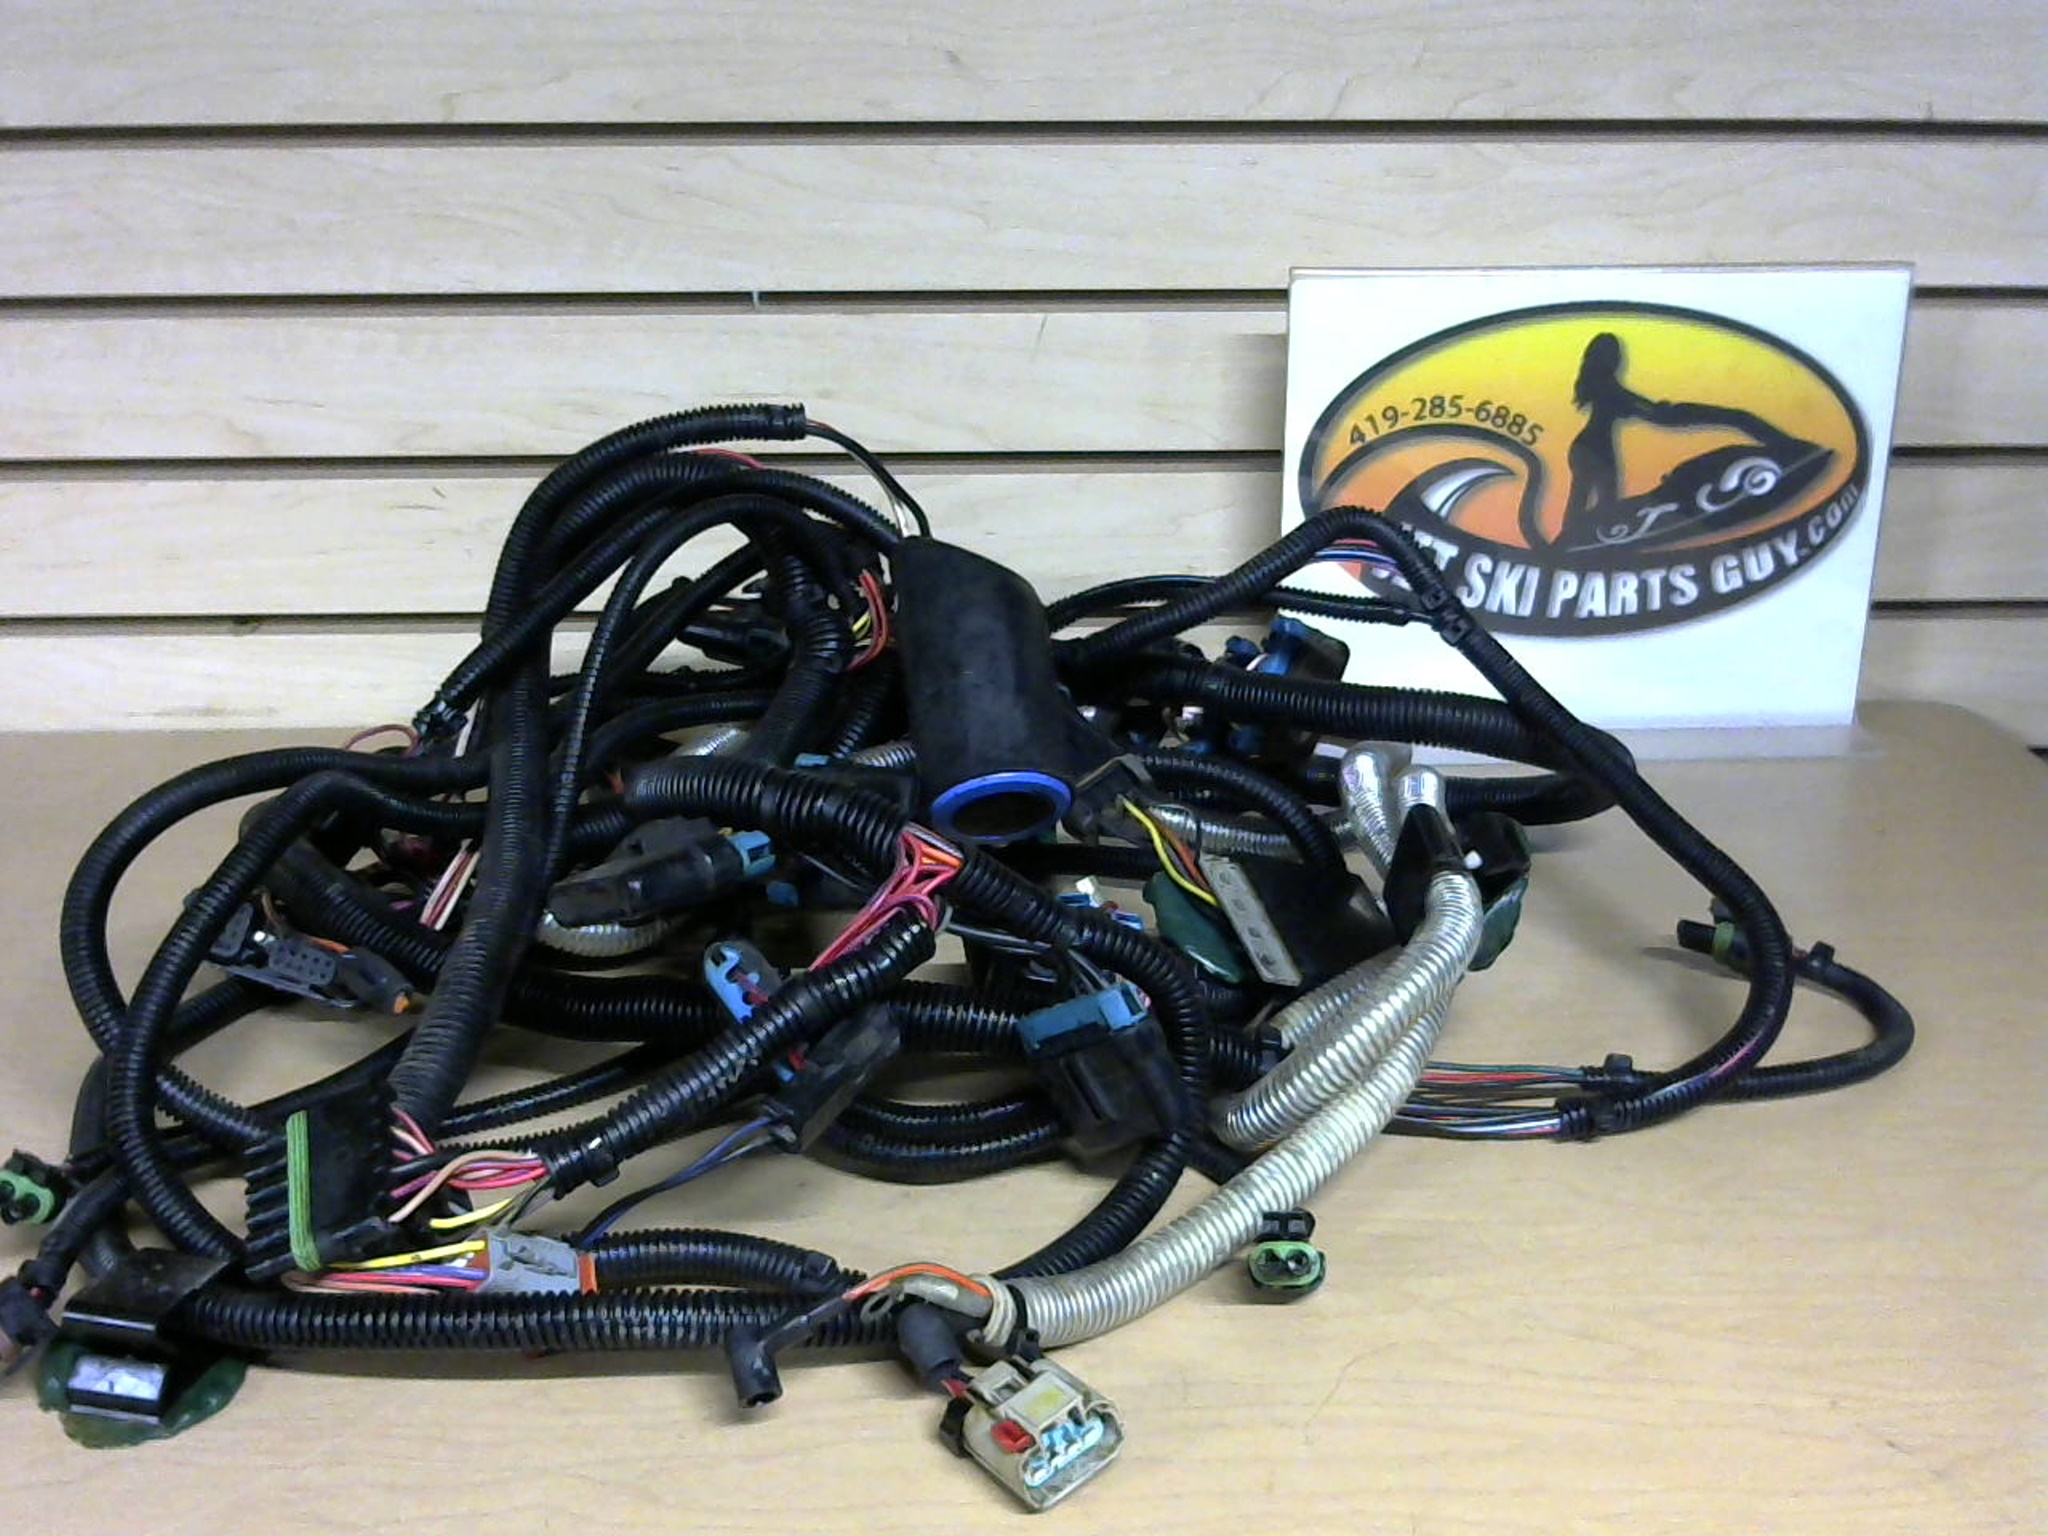 2002 Polaris Virage 800 Complete Main Wiring Harness 2461071 Used Cirrus